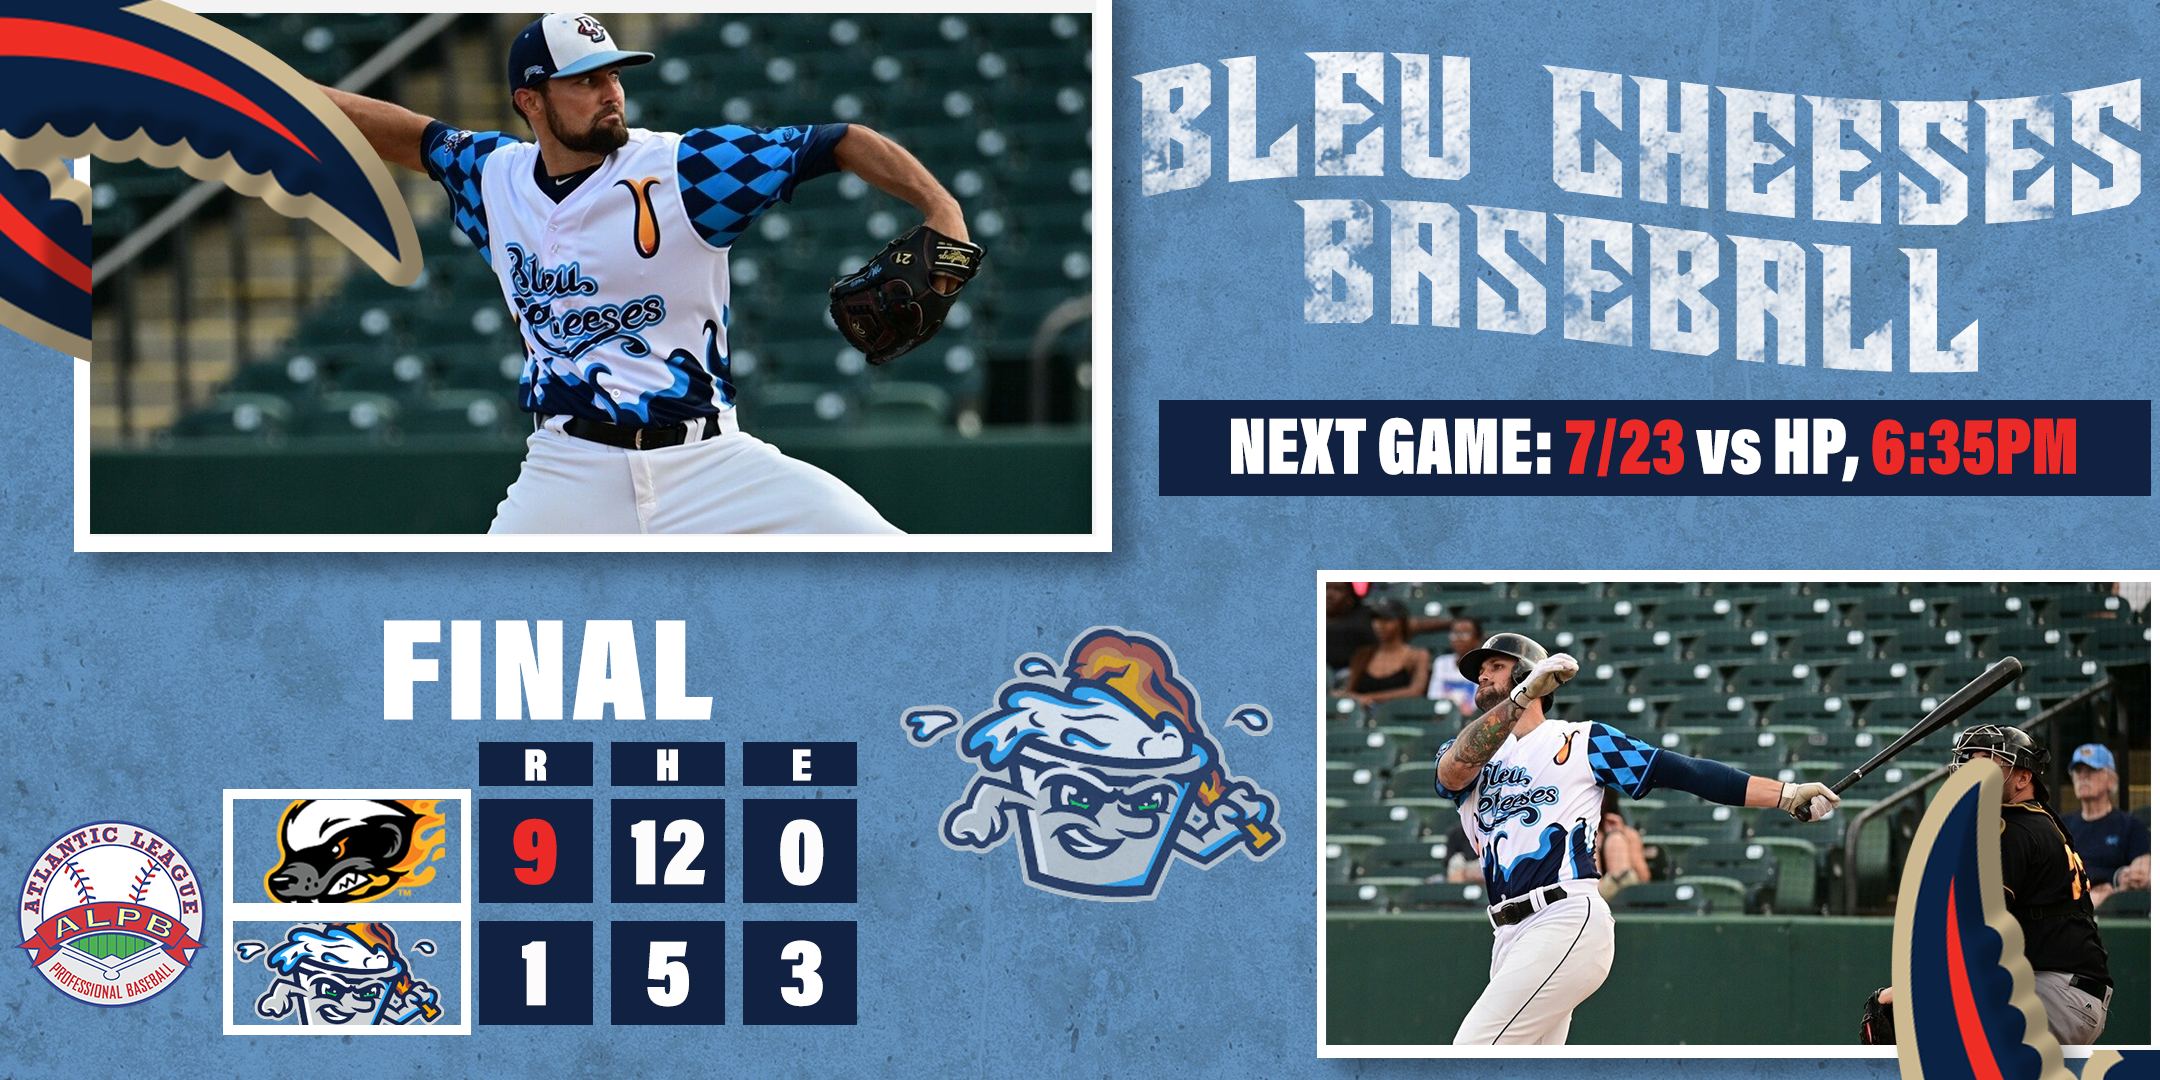 Honey Hunters Topple Bleu Cheeses in Series Finale